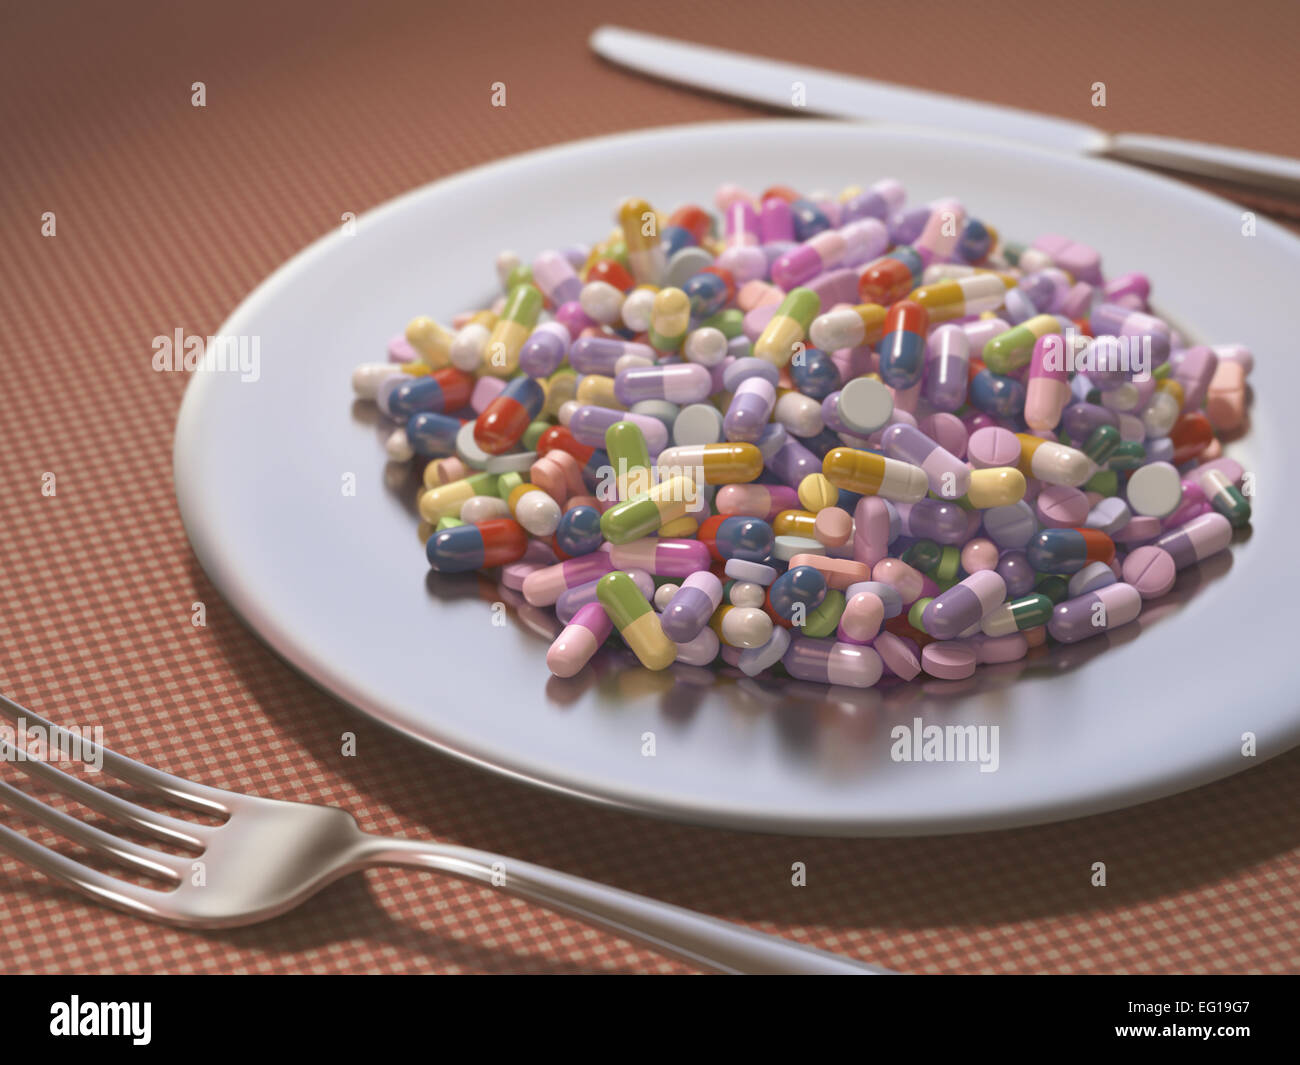 Dish full of medicines and supplements instead of food. - Stock Image